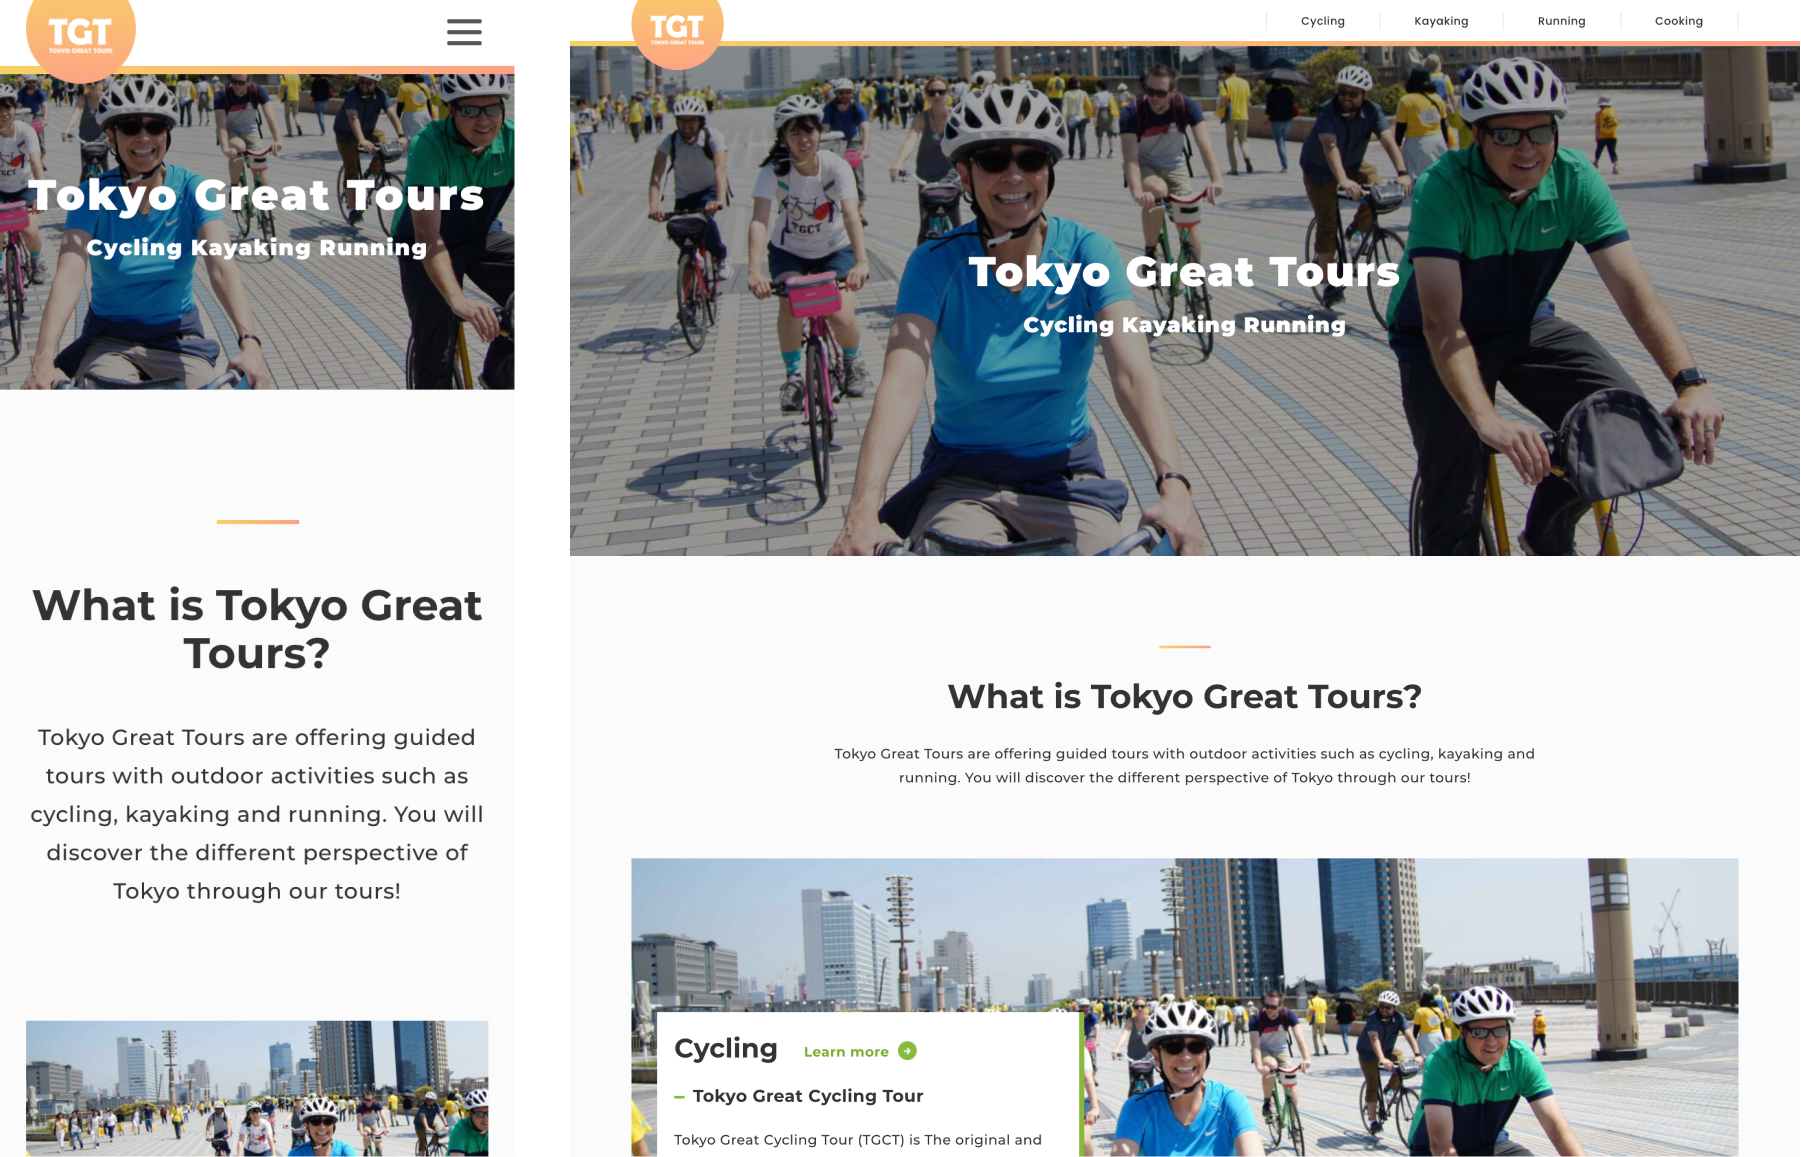 Tokyo Great Tours